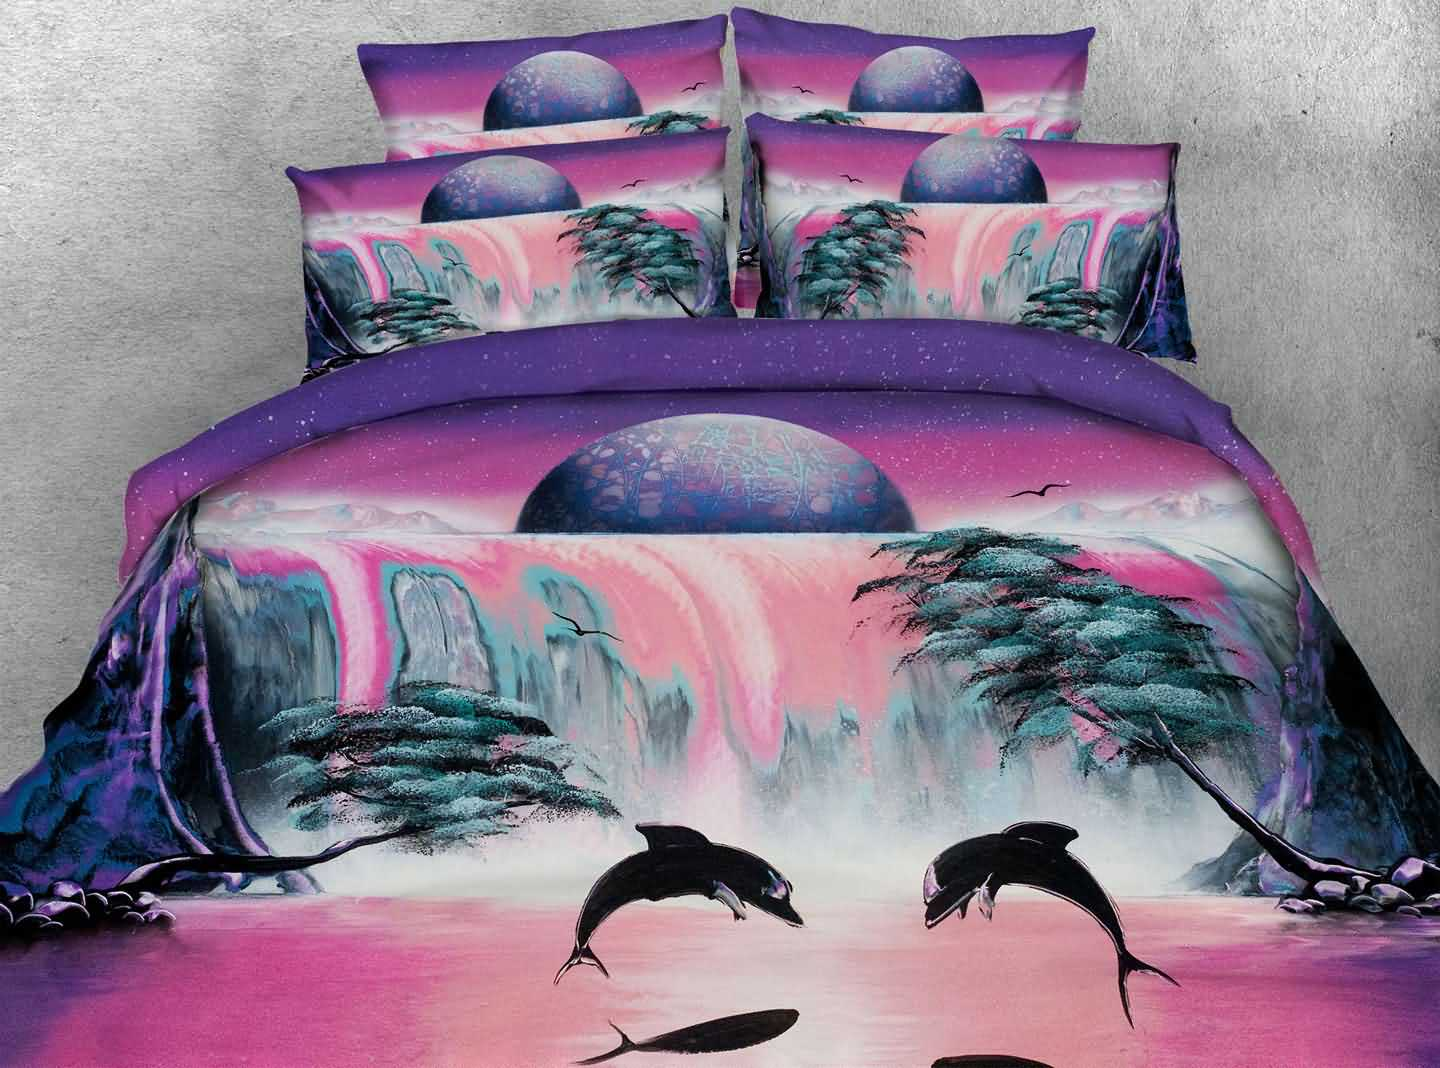 3D Dolphin and Waterfall Scenery Printed 4-Piece Bedding Sets/Duvet Covers